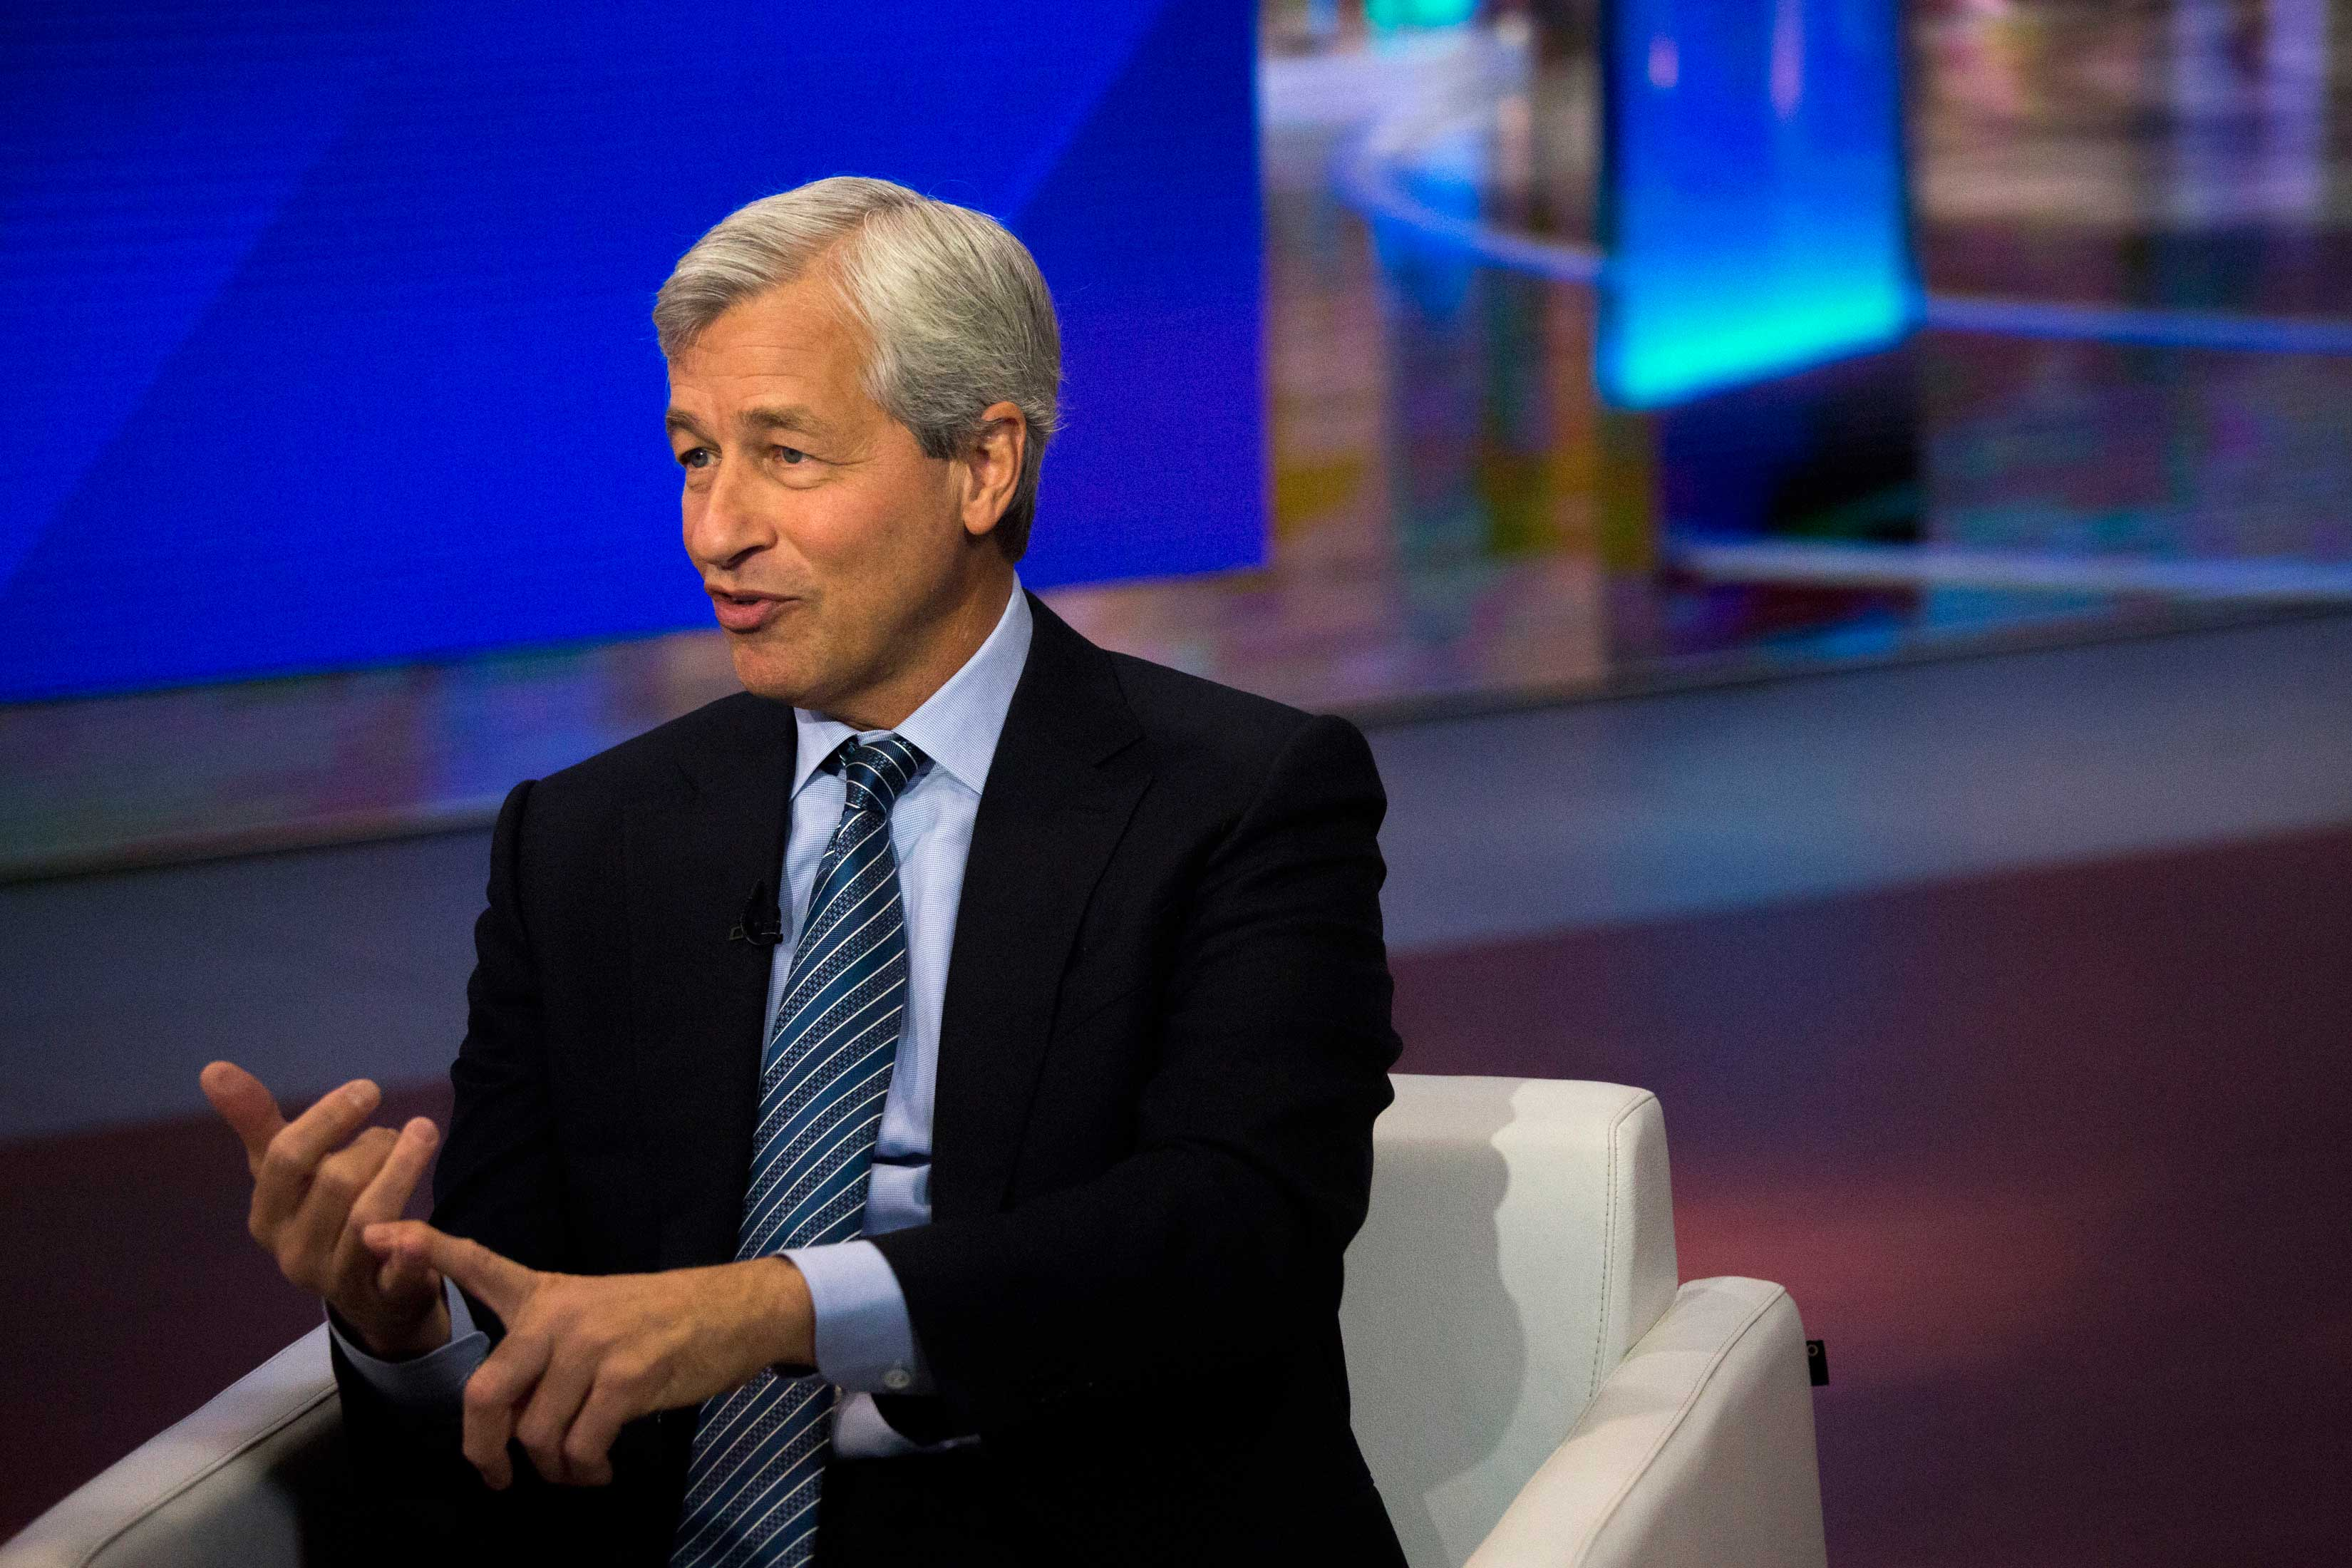 JPMorgan Chase & Co. Chief Executive Officer Jamie Dimon Interview